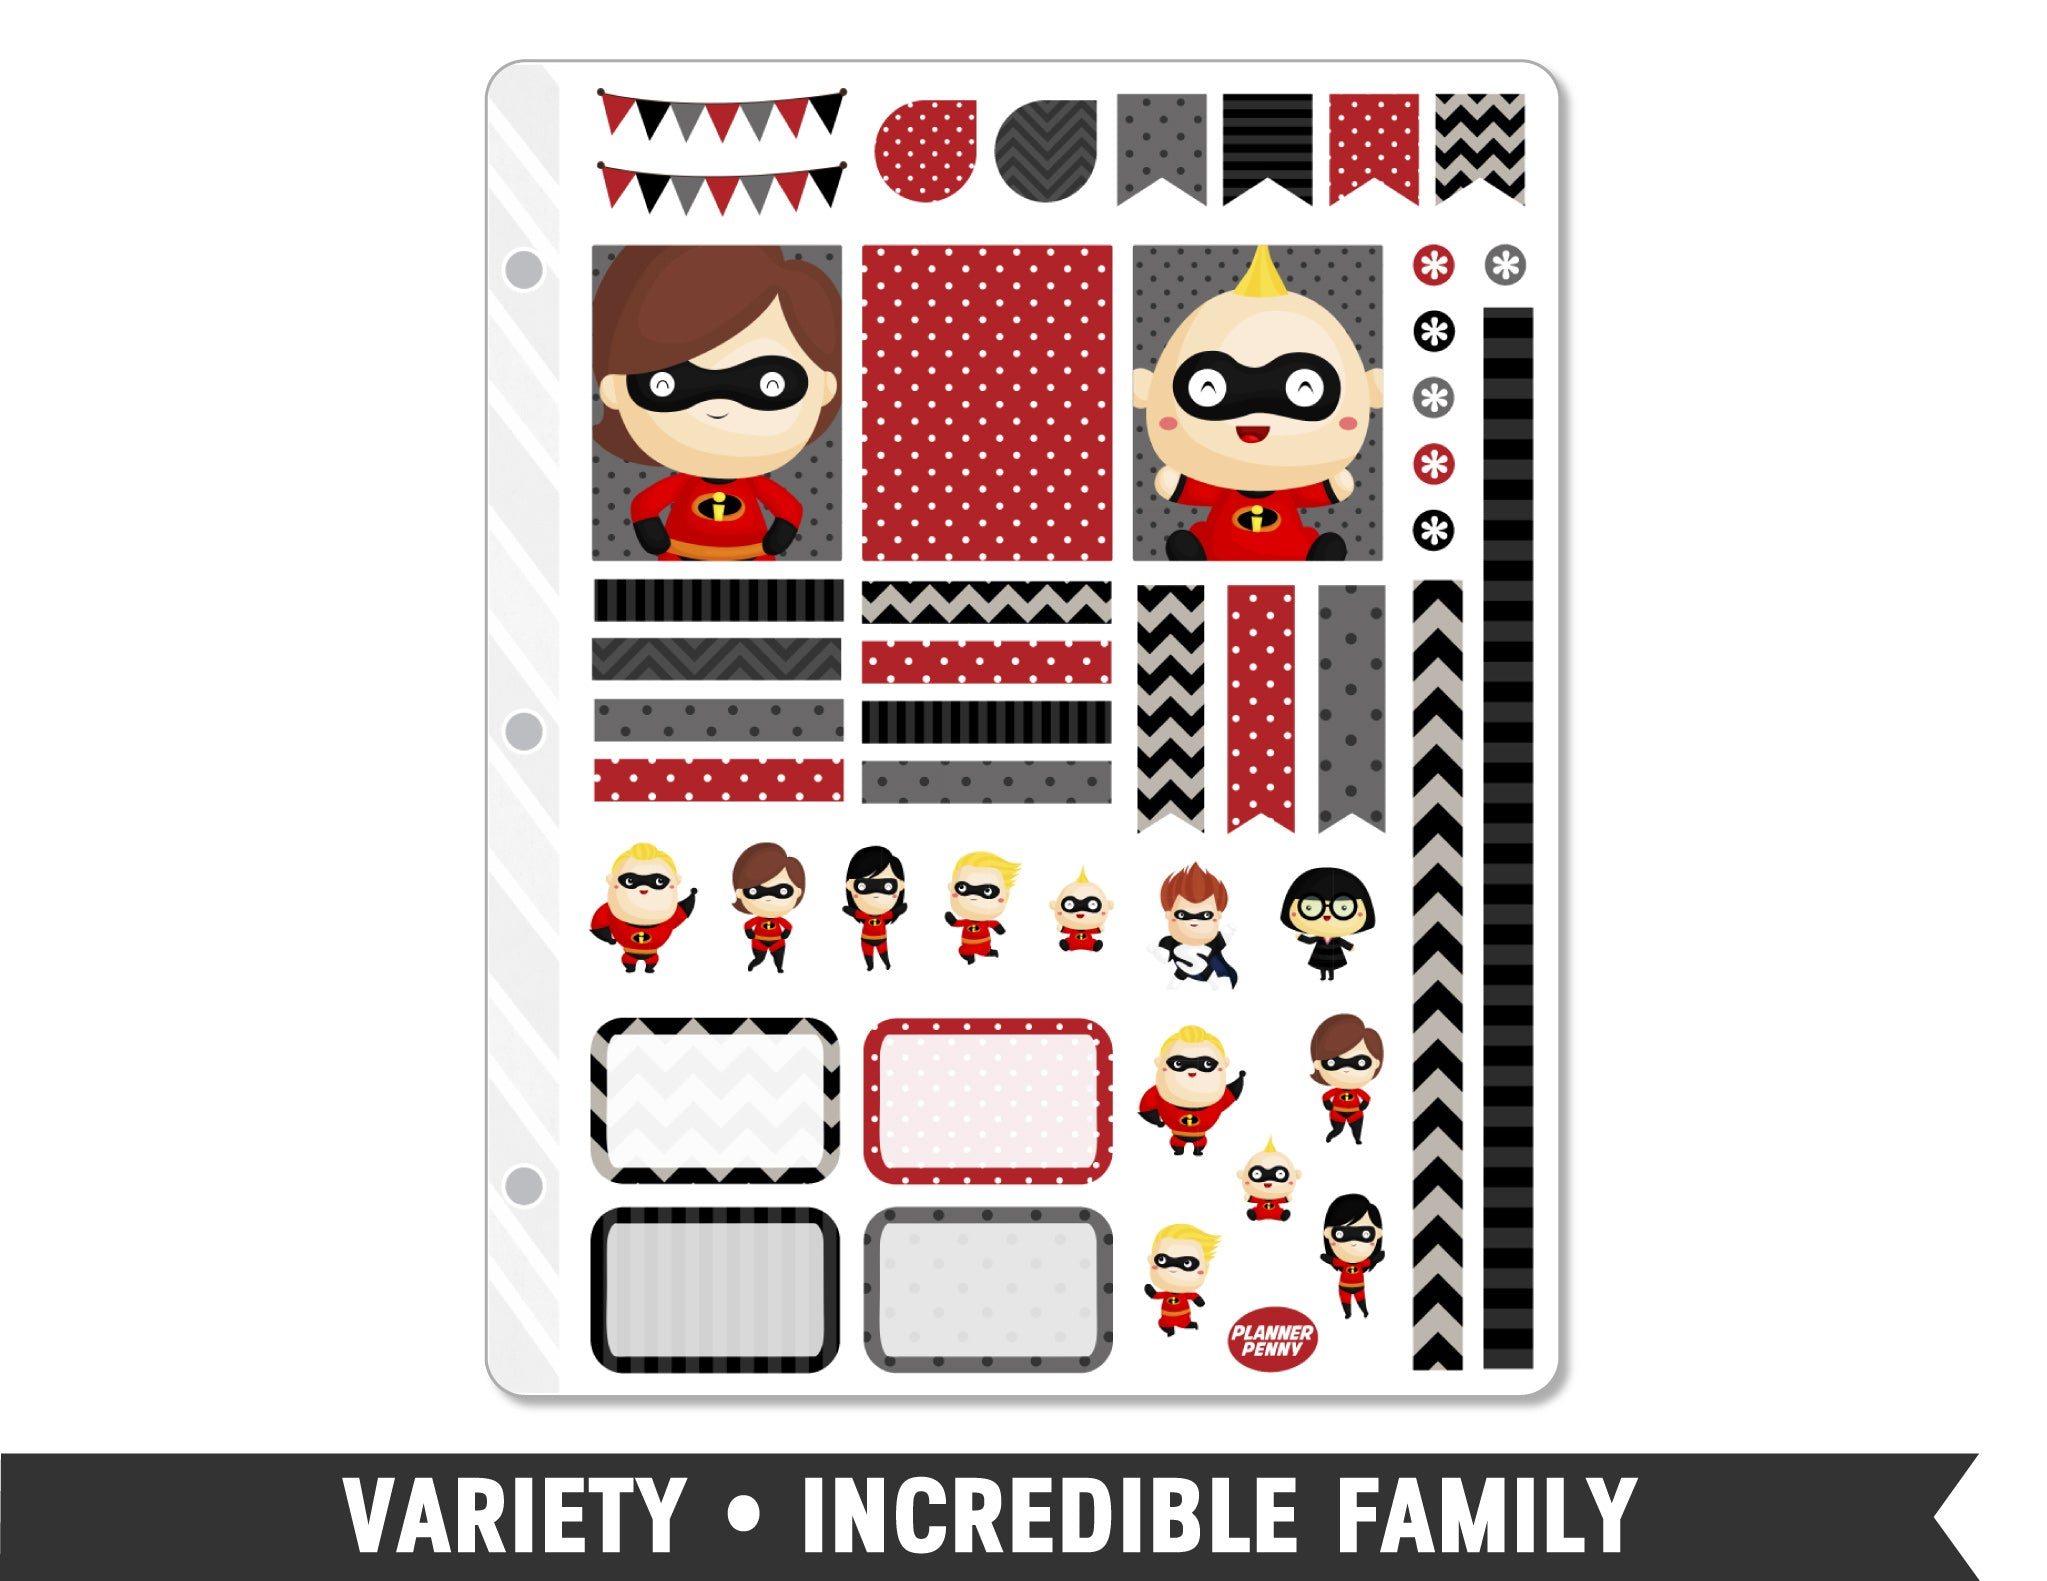 Variety • Incredible Family Weekly Spread Planner Stickers